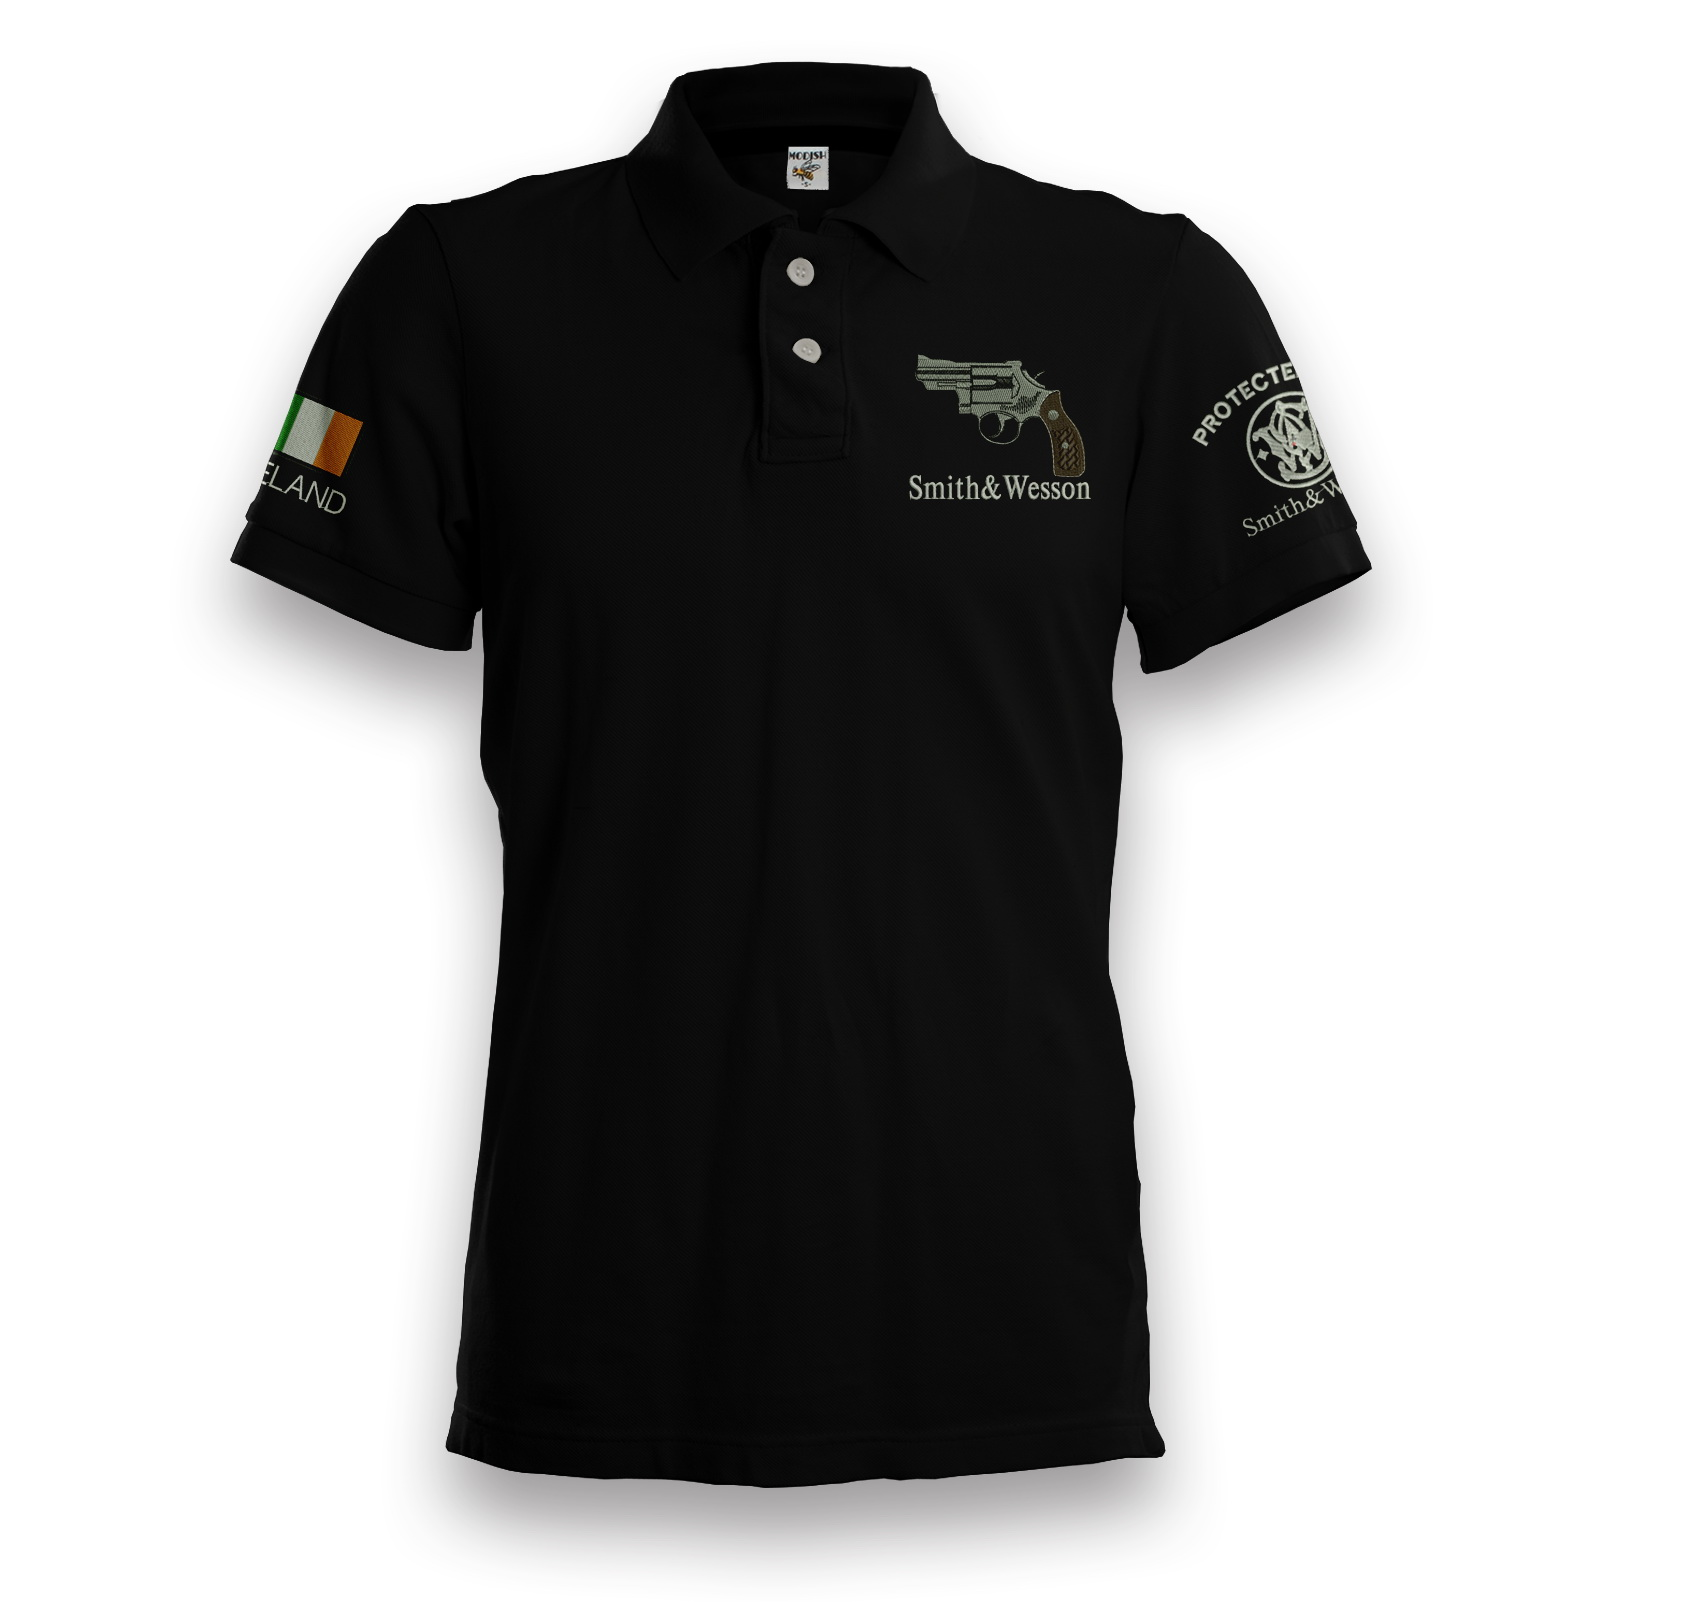 Bkk Bargains Smith Wesson Embroidered Polo Shirt Plus Custom